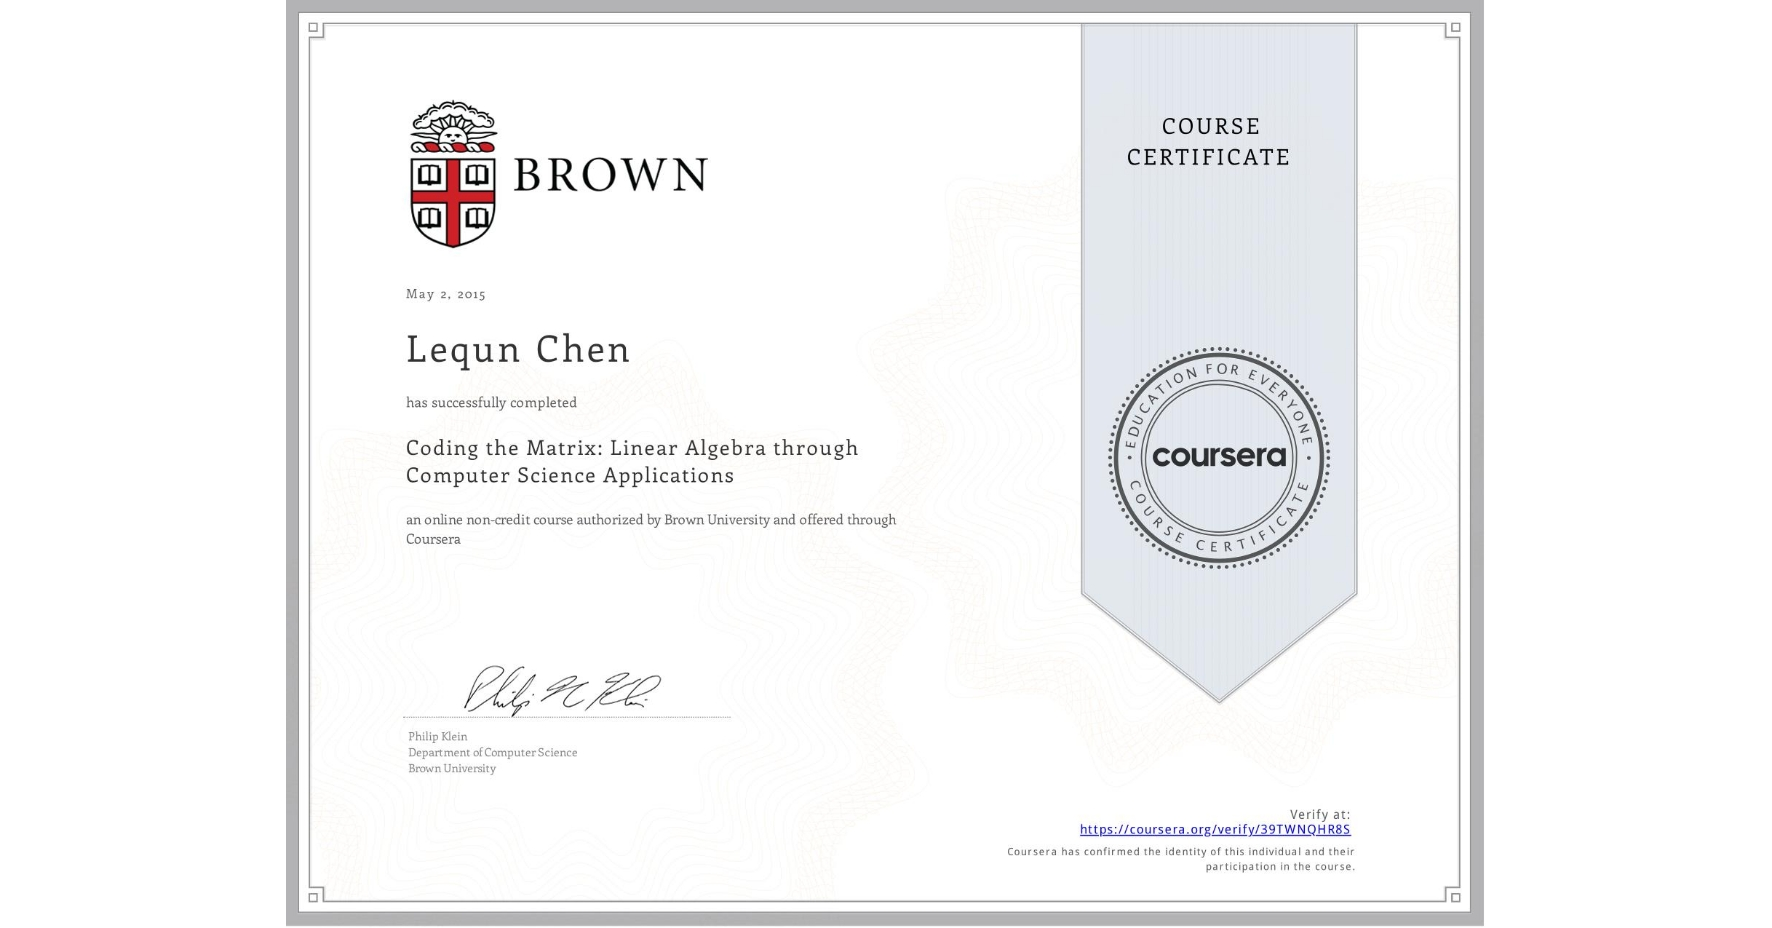 View certificate for Lequn Chen, Coding the Matrix: Linear Algebra through Computer Science Applications, an online non-credit course authorized by Brown University and offered through Coursera